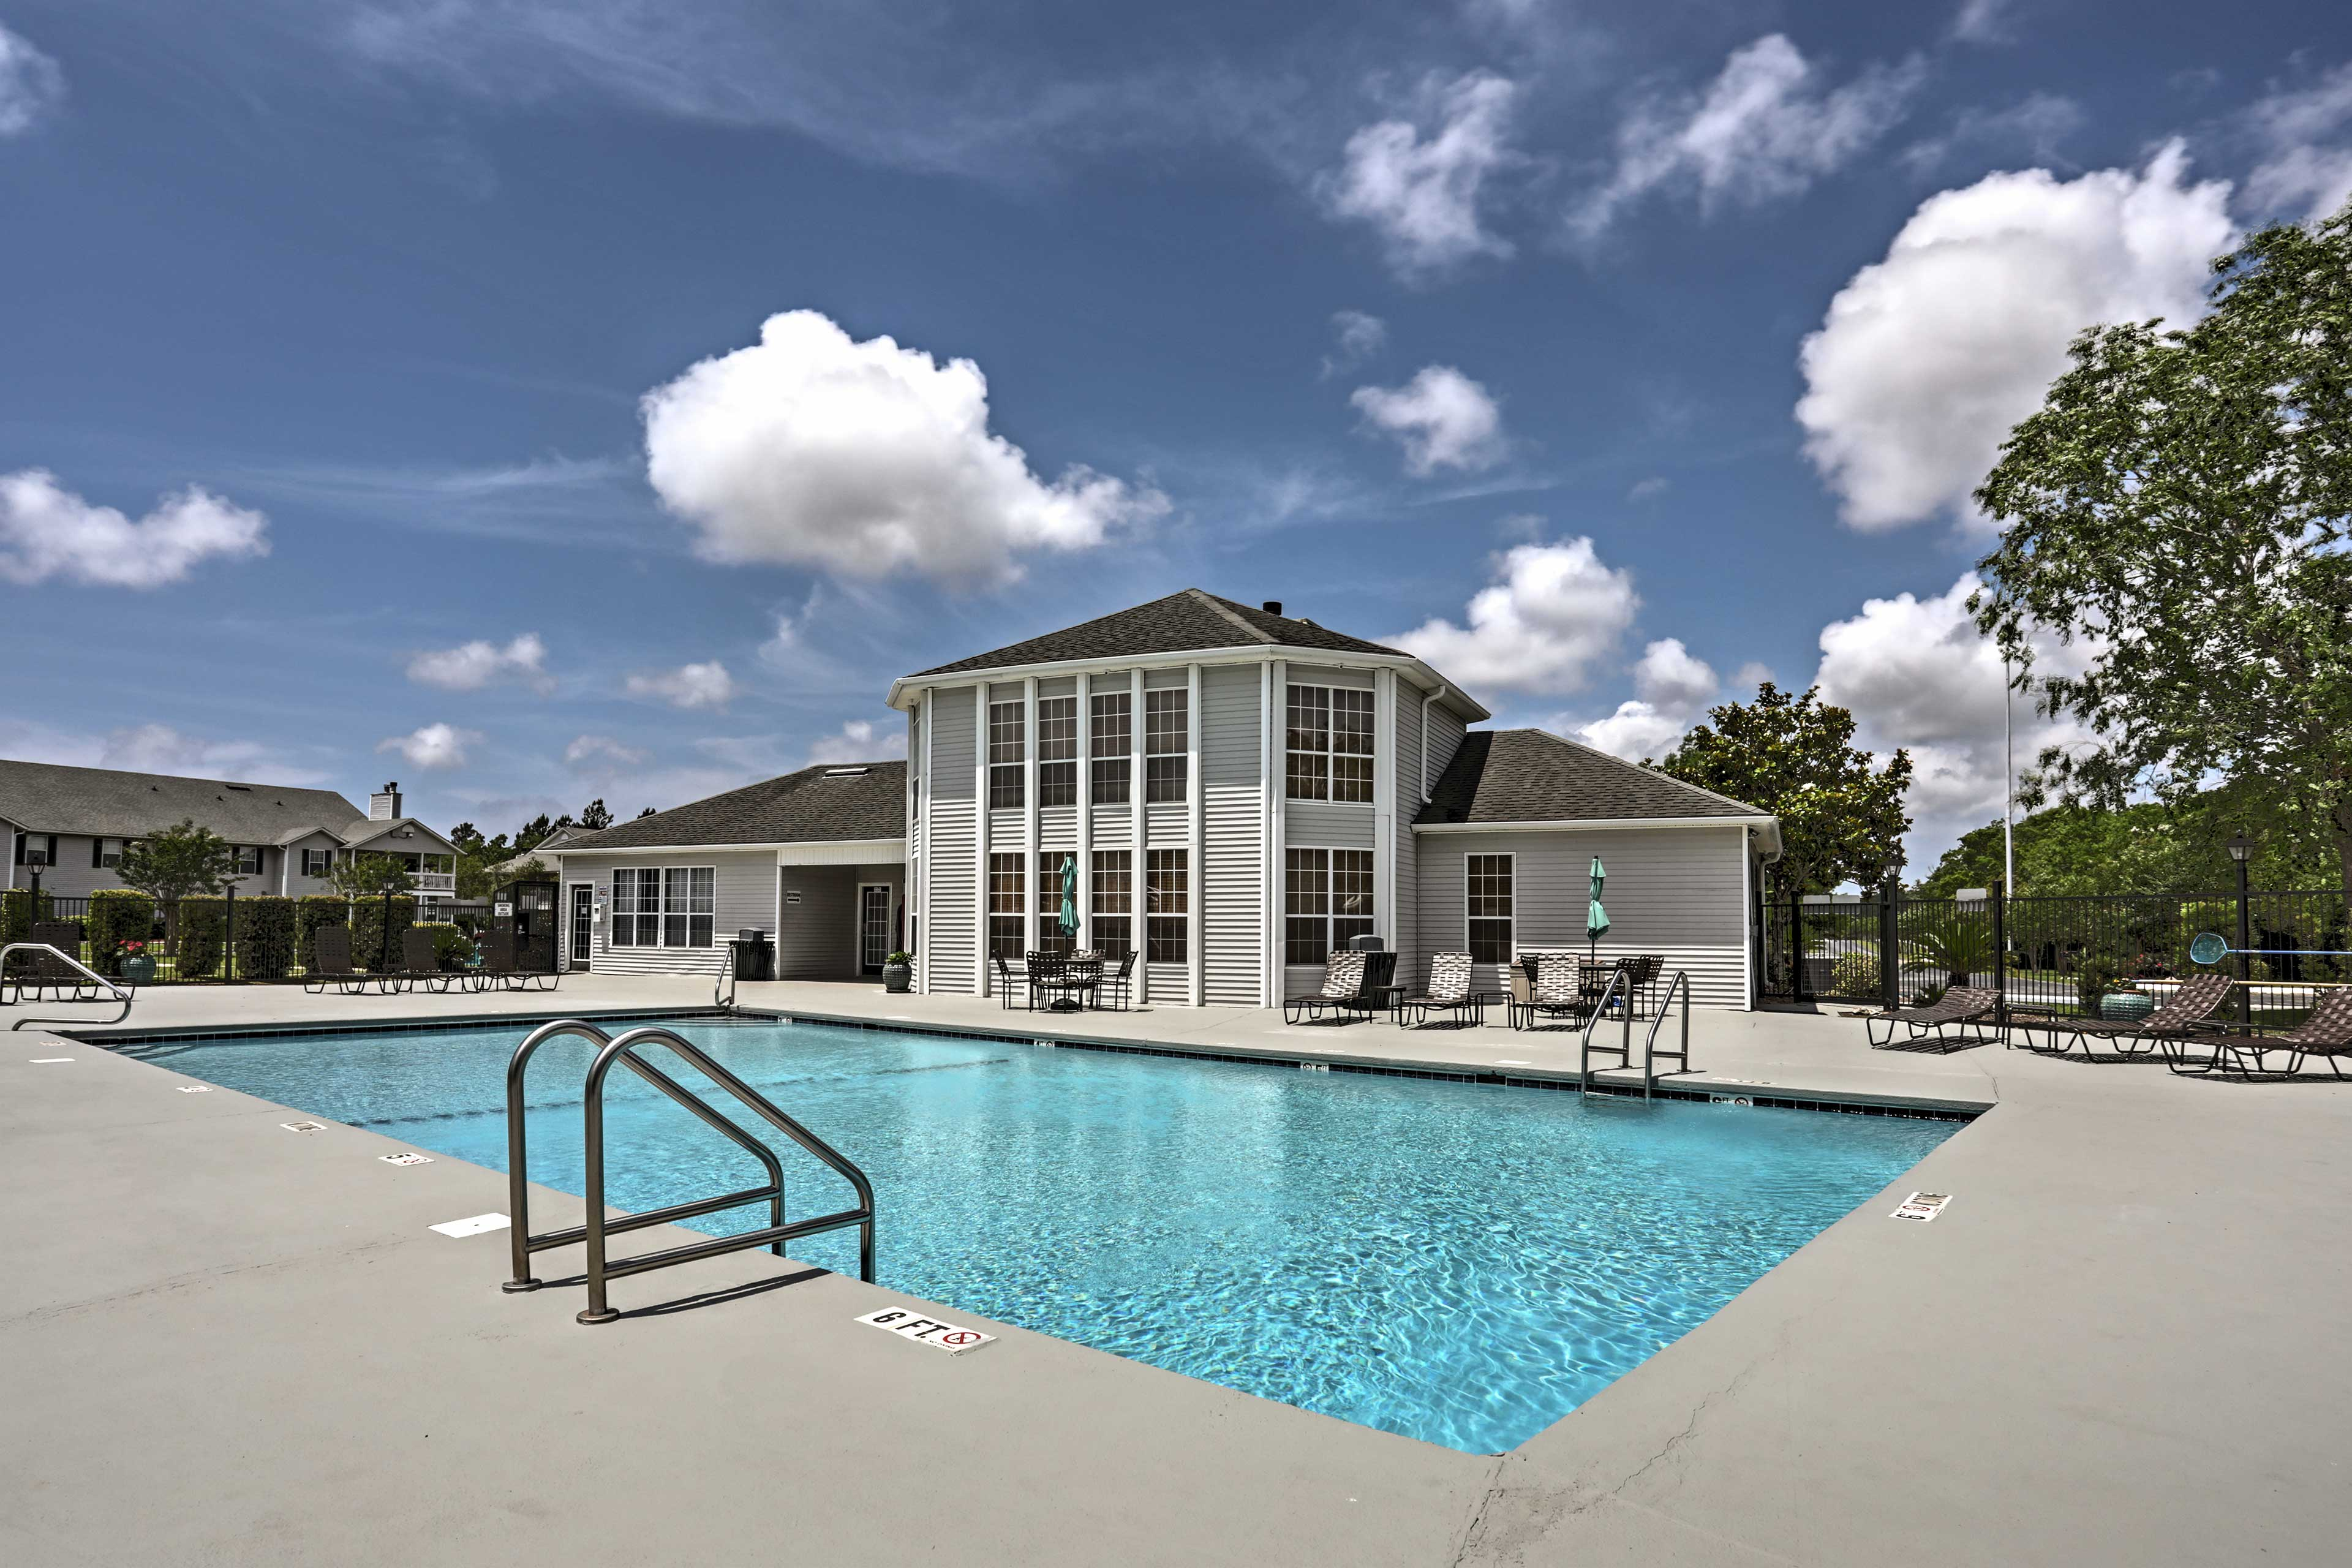 Take a dip in the community outdoor pool to cool off from the summer heat.